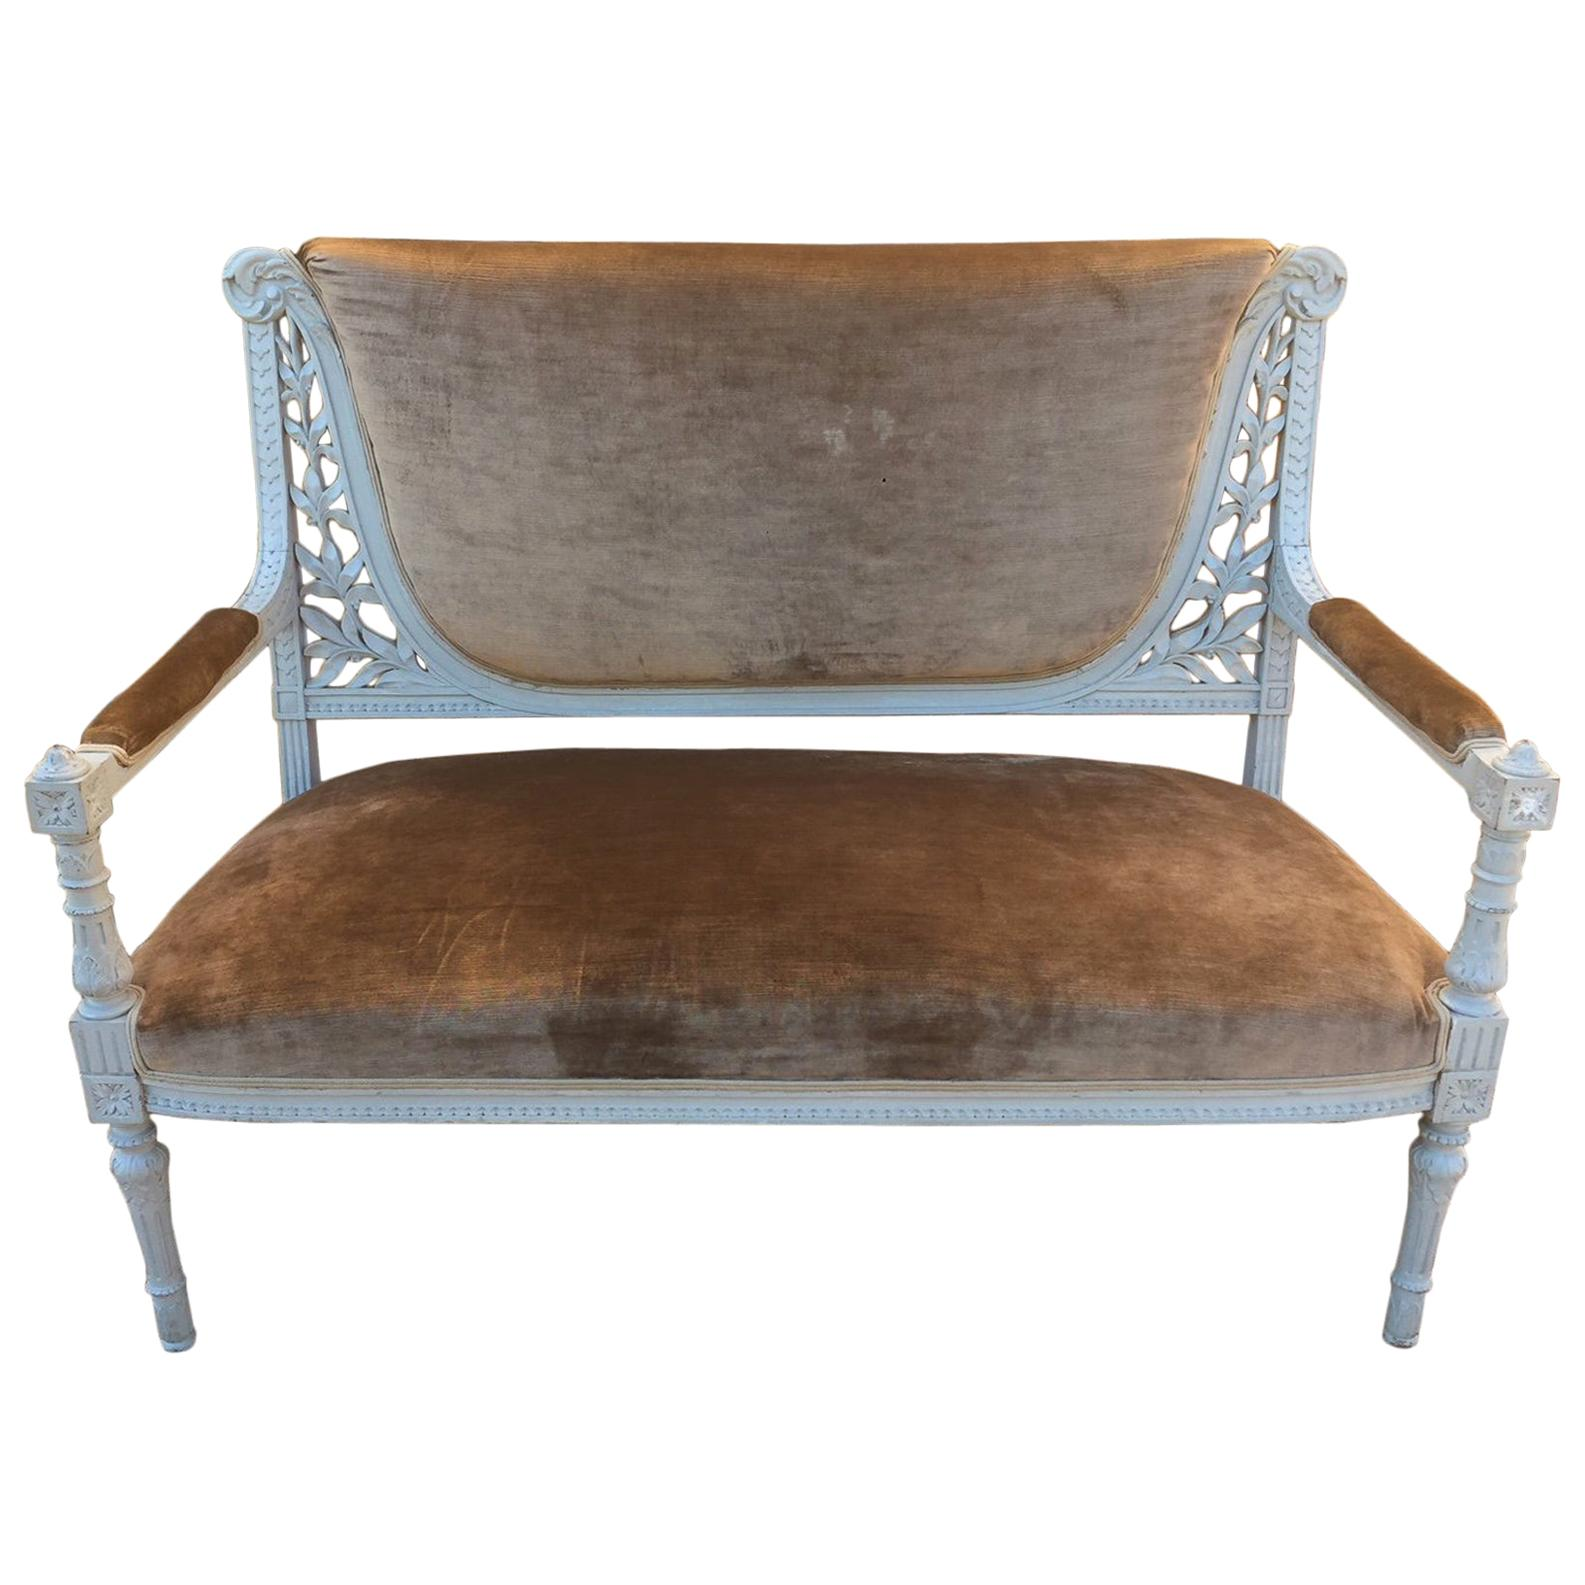 French Louis XVI Style Patinated Bench, 1900s